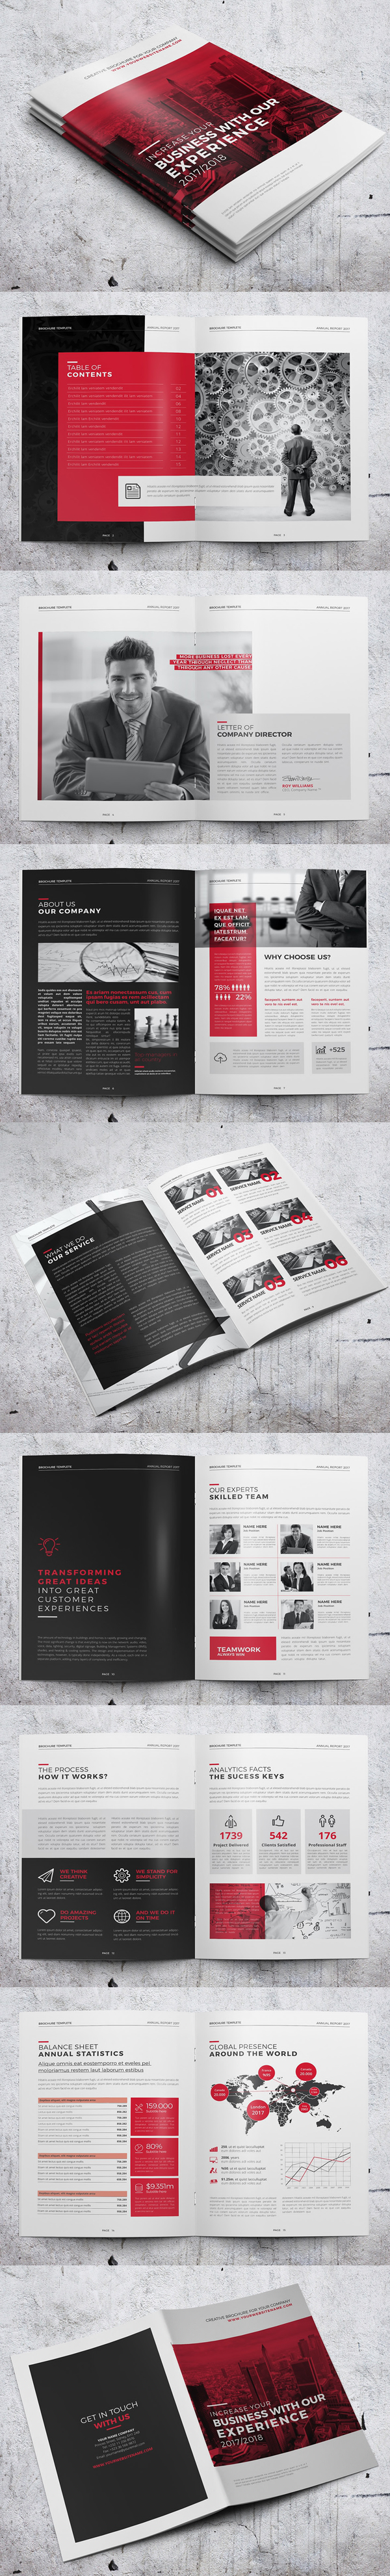 Corporate Clean Brochure / Annual Report Design